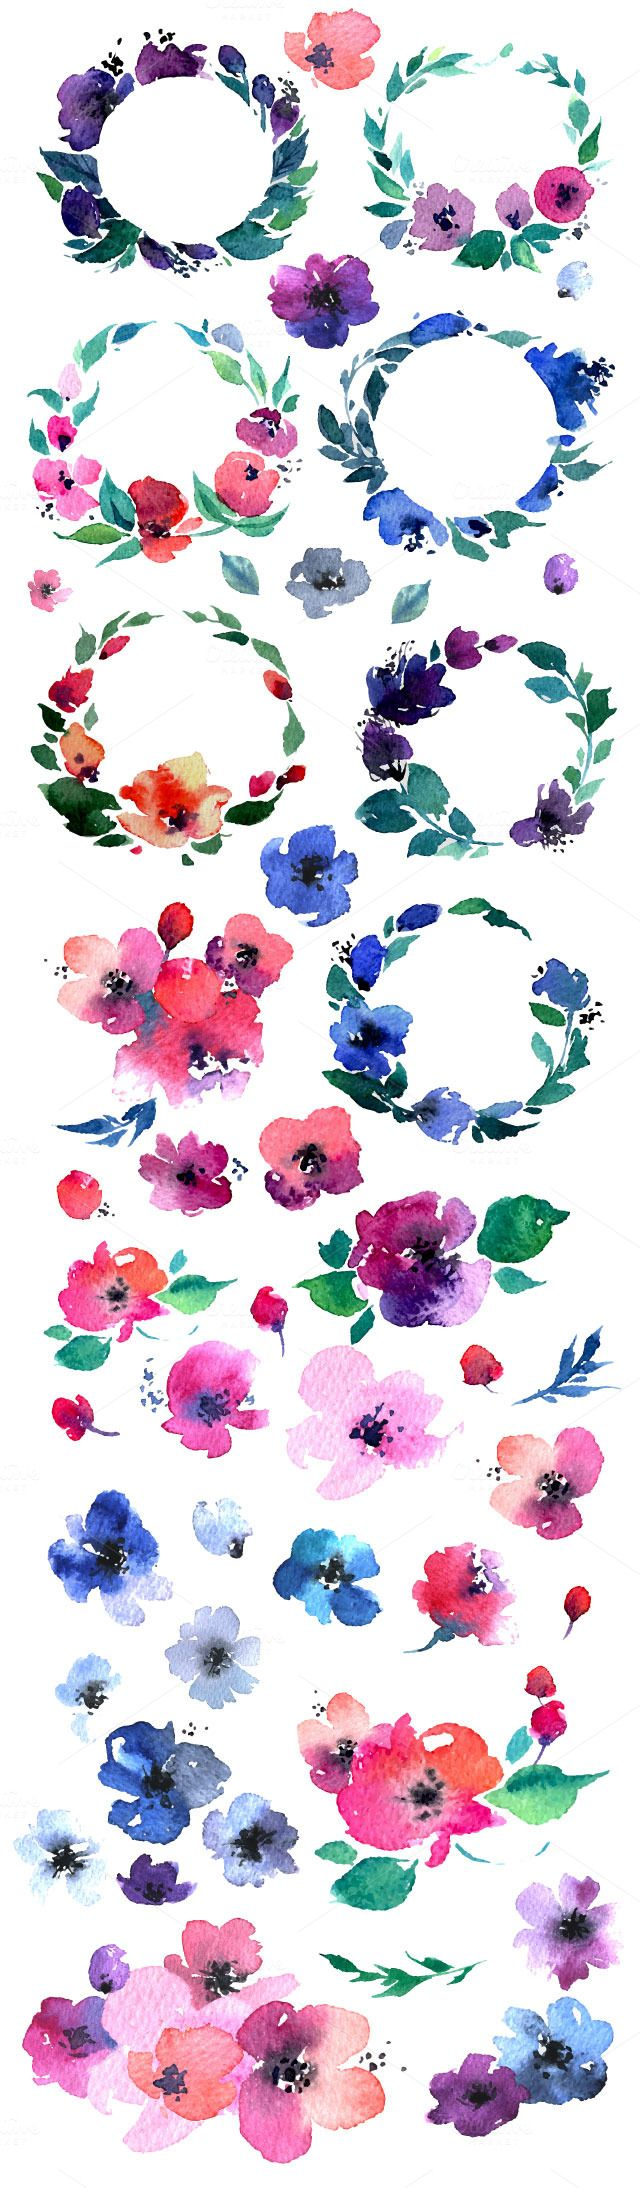 Vector Floral Collection of Painted - Illustrations - 3 More